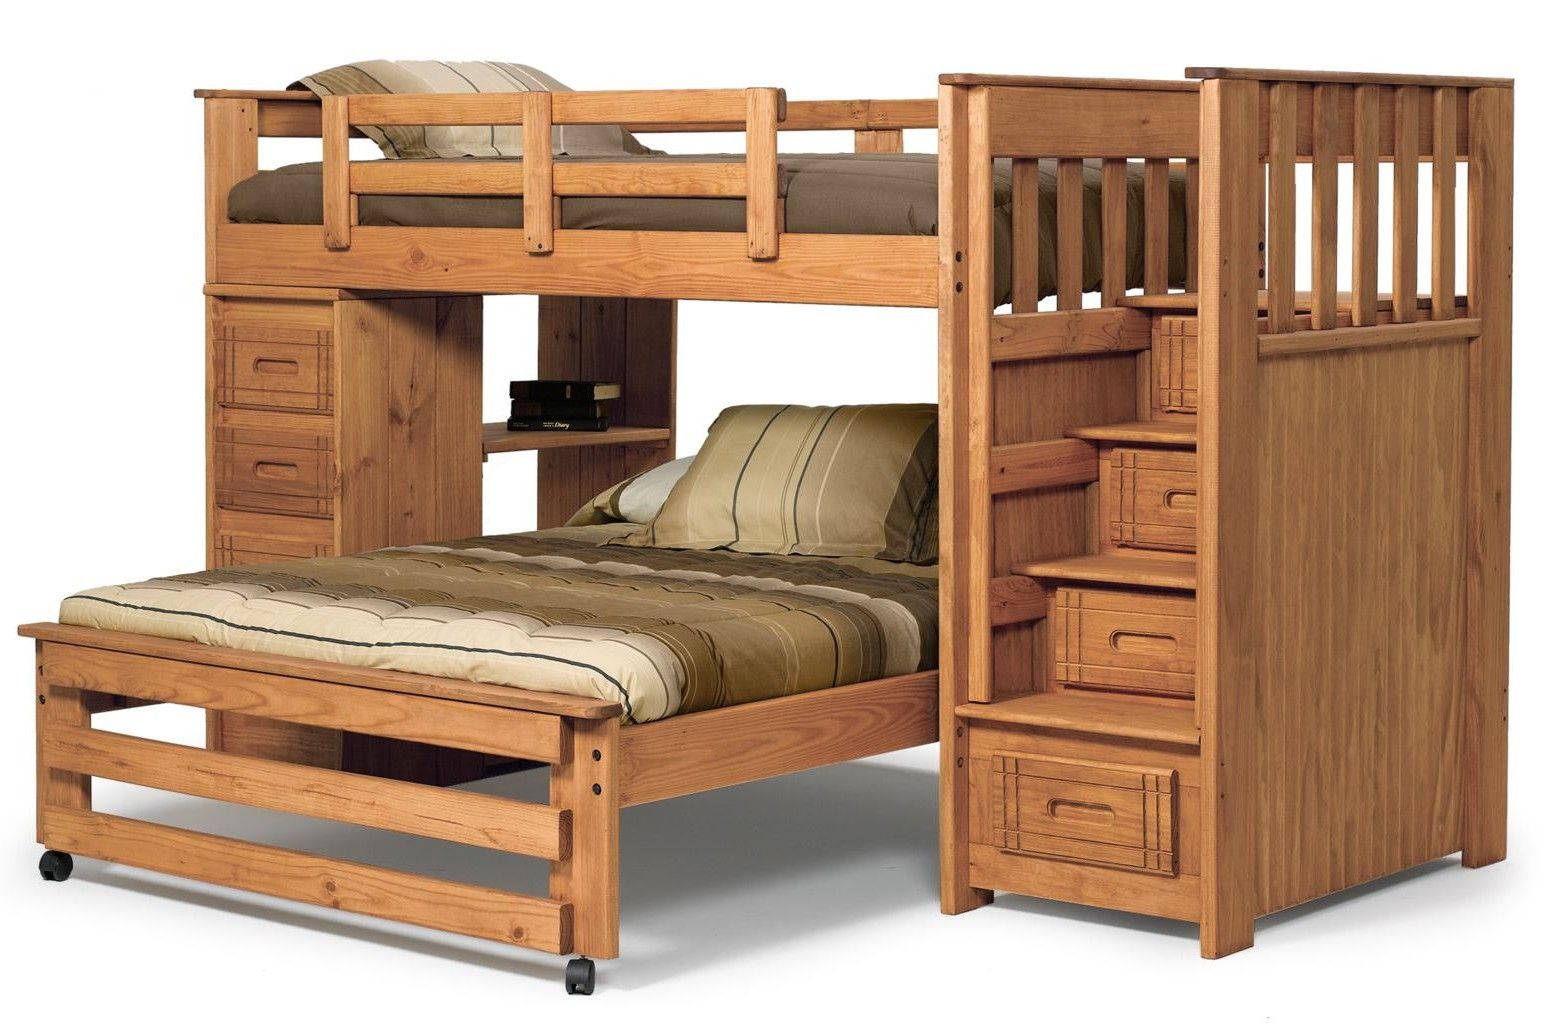 21 Top Wooden L-Shaped Bunk Beds (WITH SPACE-SAVING FEATURES ...